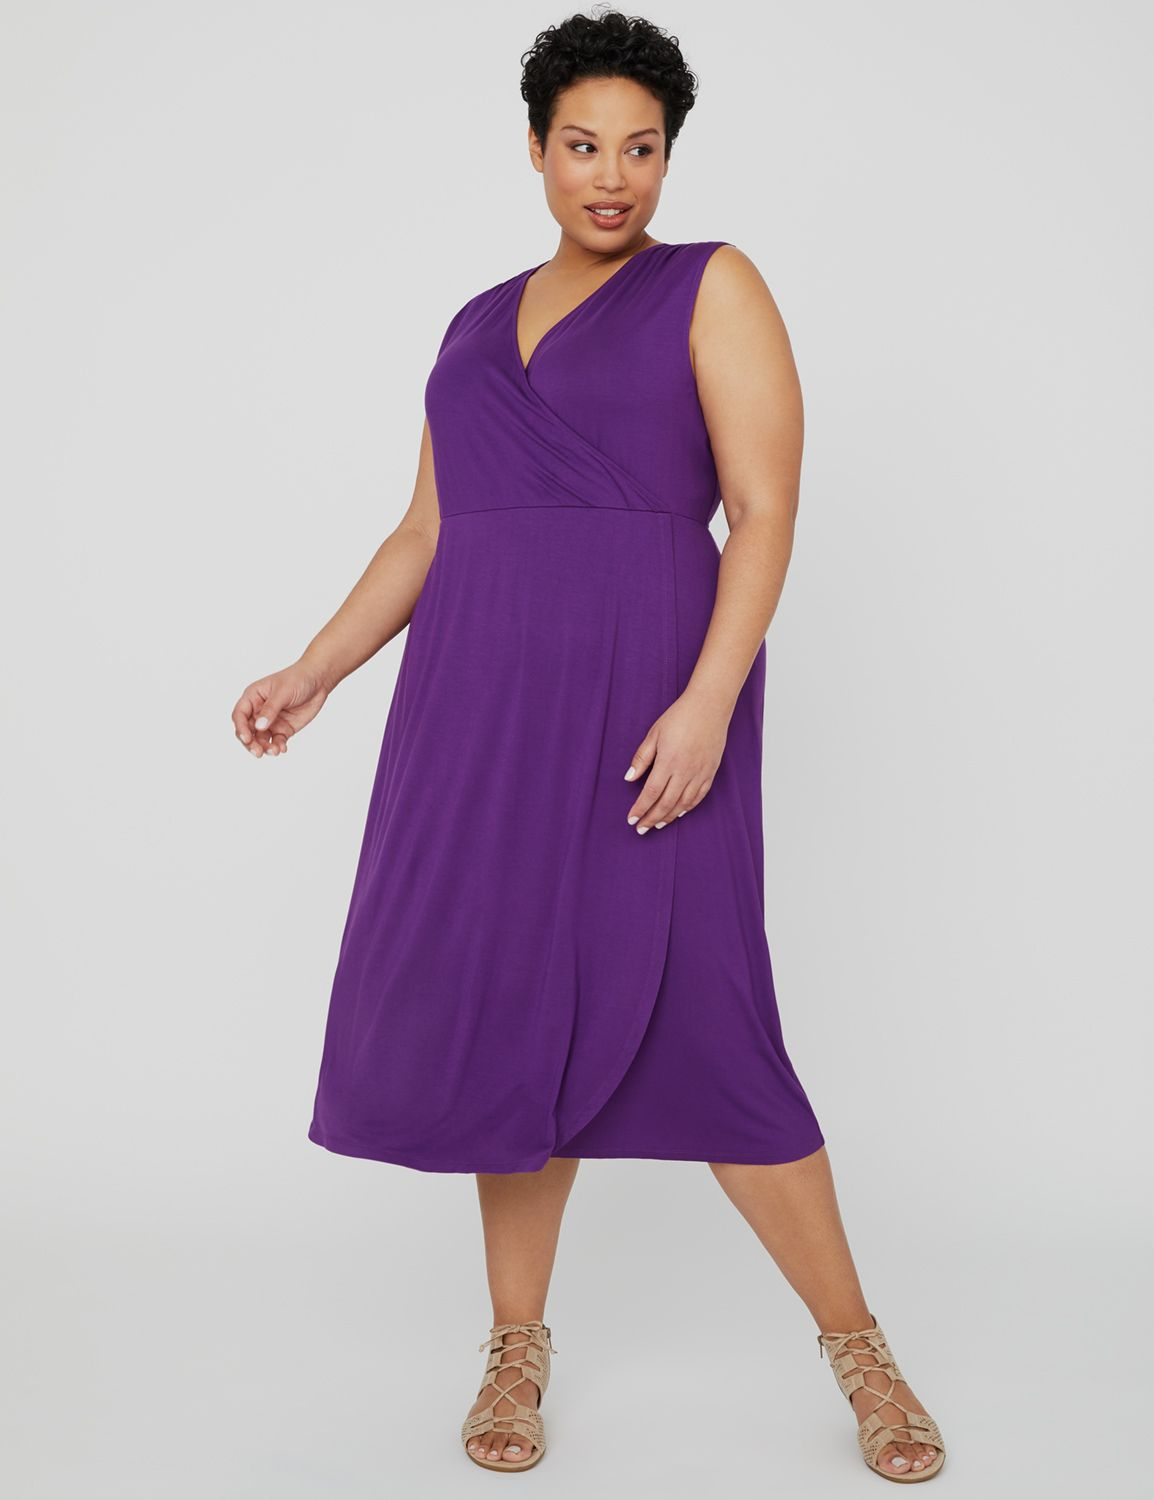 Riverview Wrap Dress 1088151 Vneck Front and Back Maxi E MP-300102365